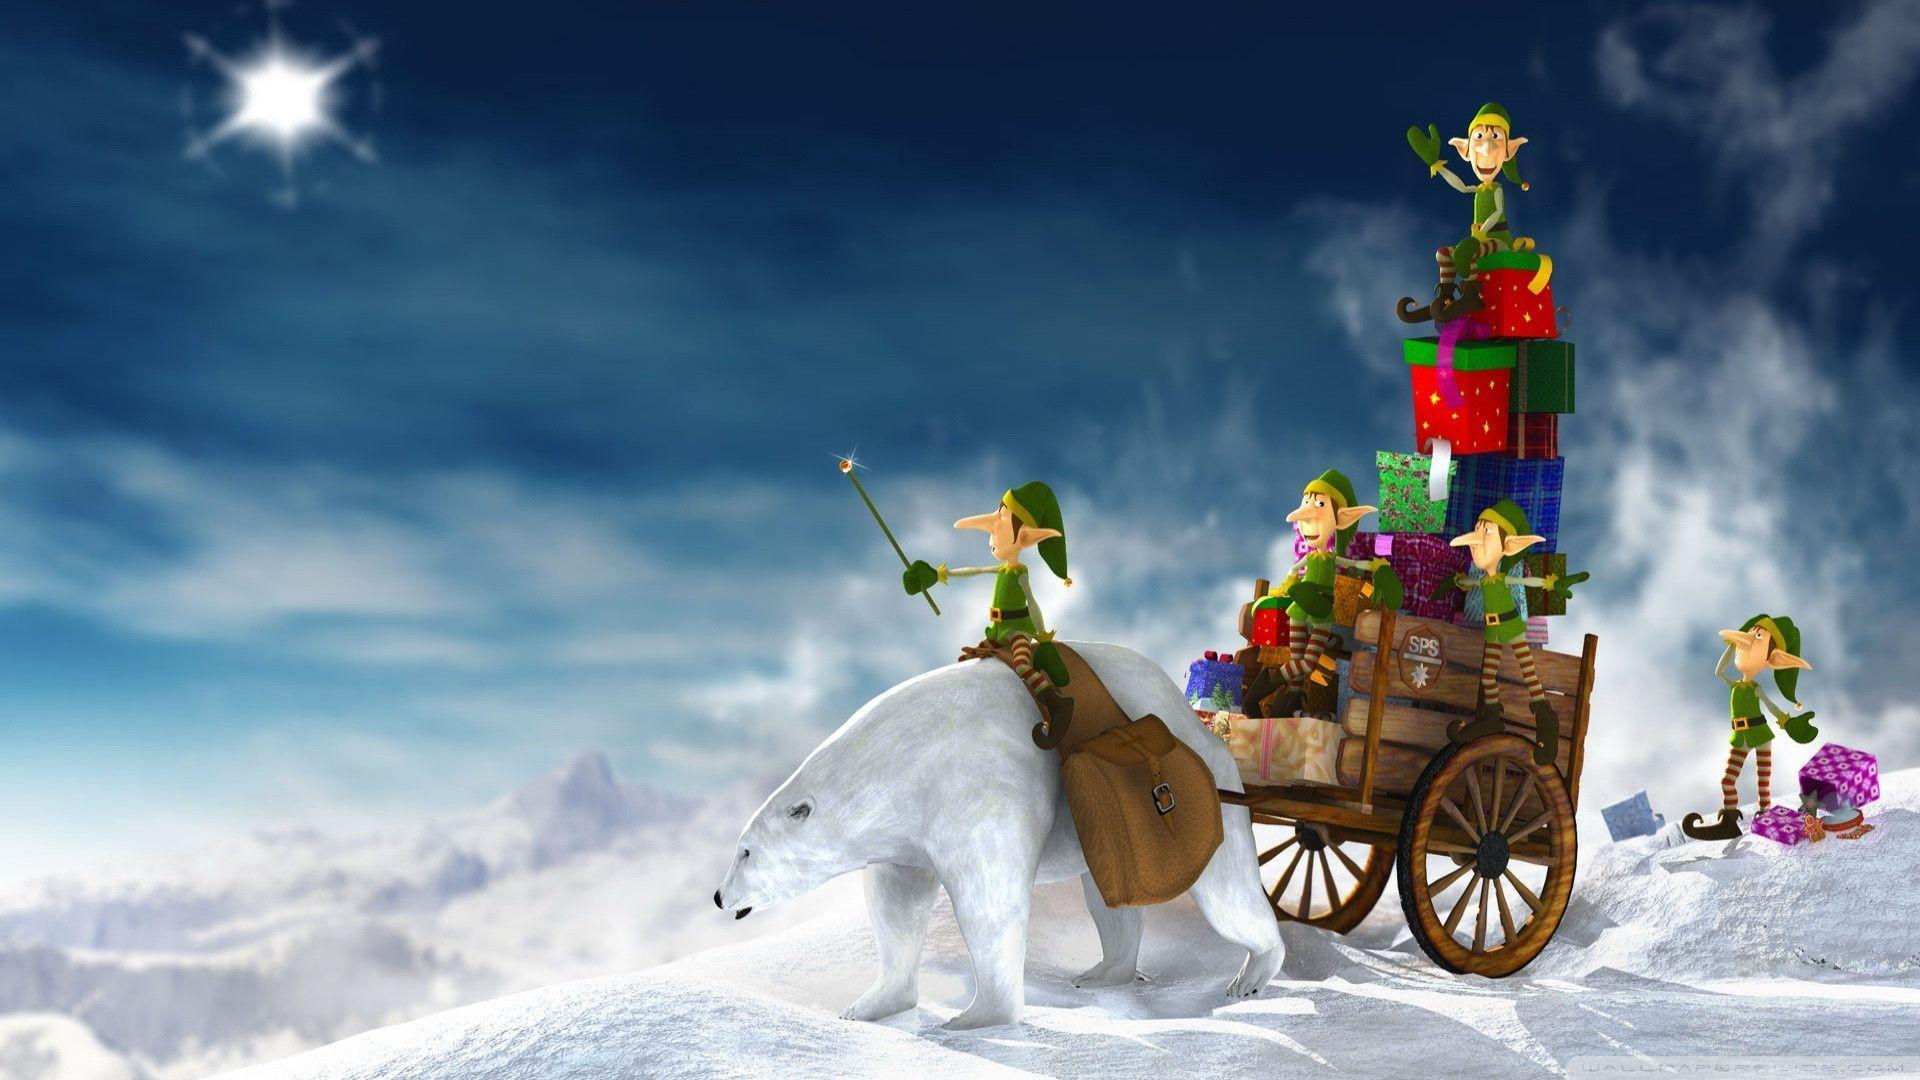 Download Christmas Elves 3d Wallpapers 1920x1080